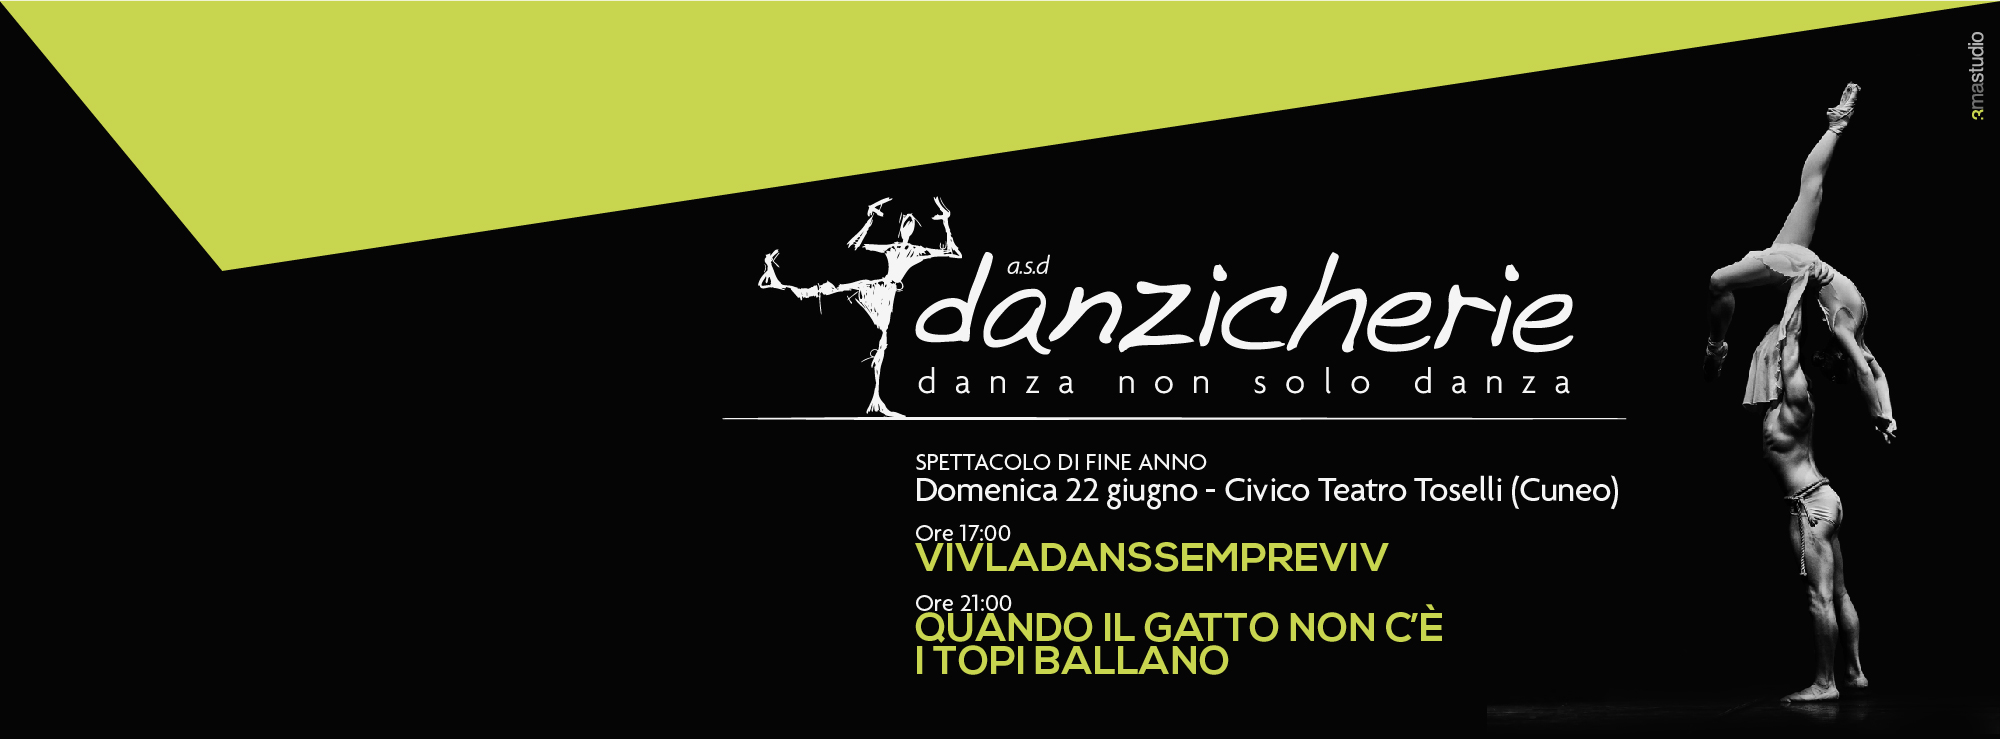 danzicherie_facebook_evento